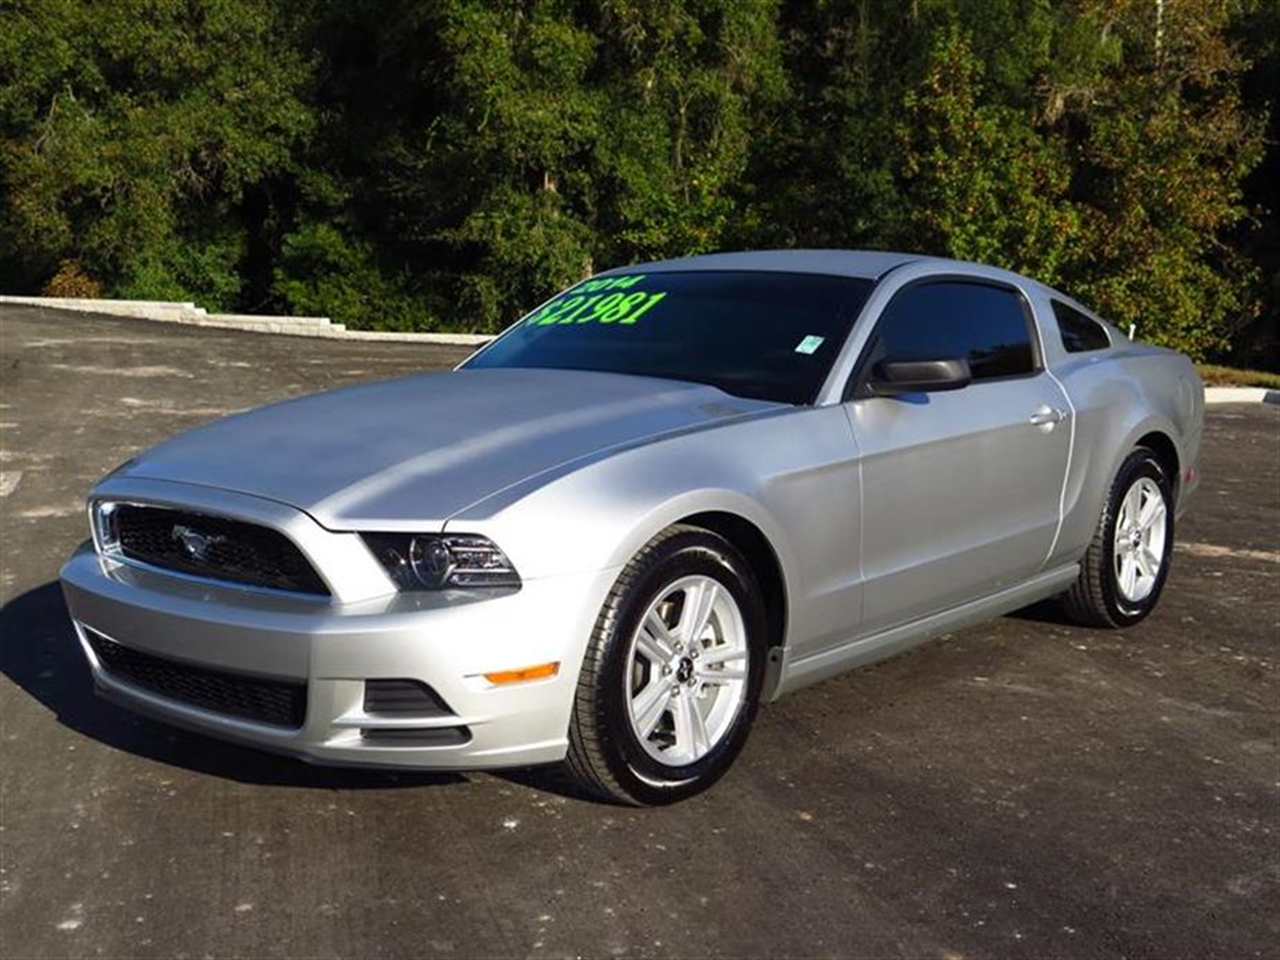 2014 FORD MUSTANG 2dr Cpe V6 20 miles 2 12V DC Power Outlets 2 Seatback Storage Pockets 4-Way Pa